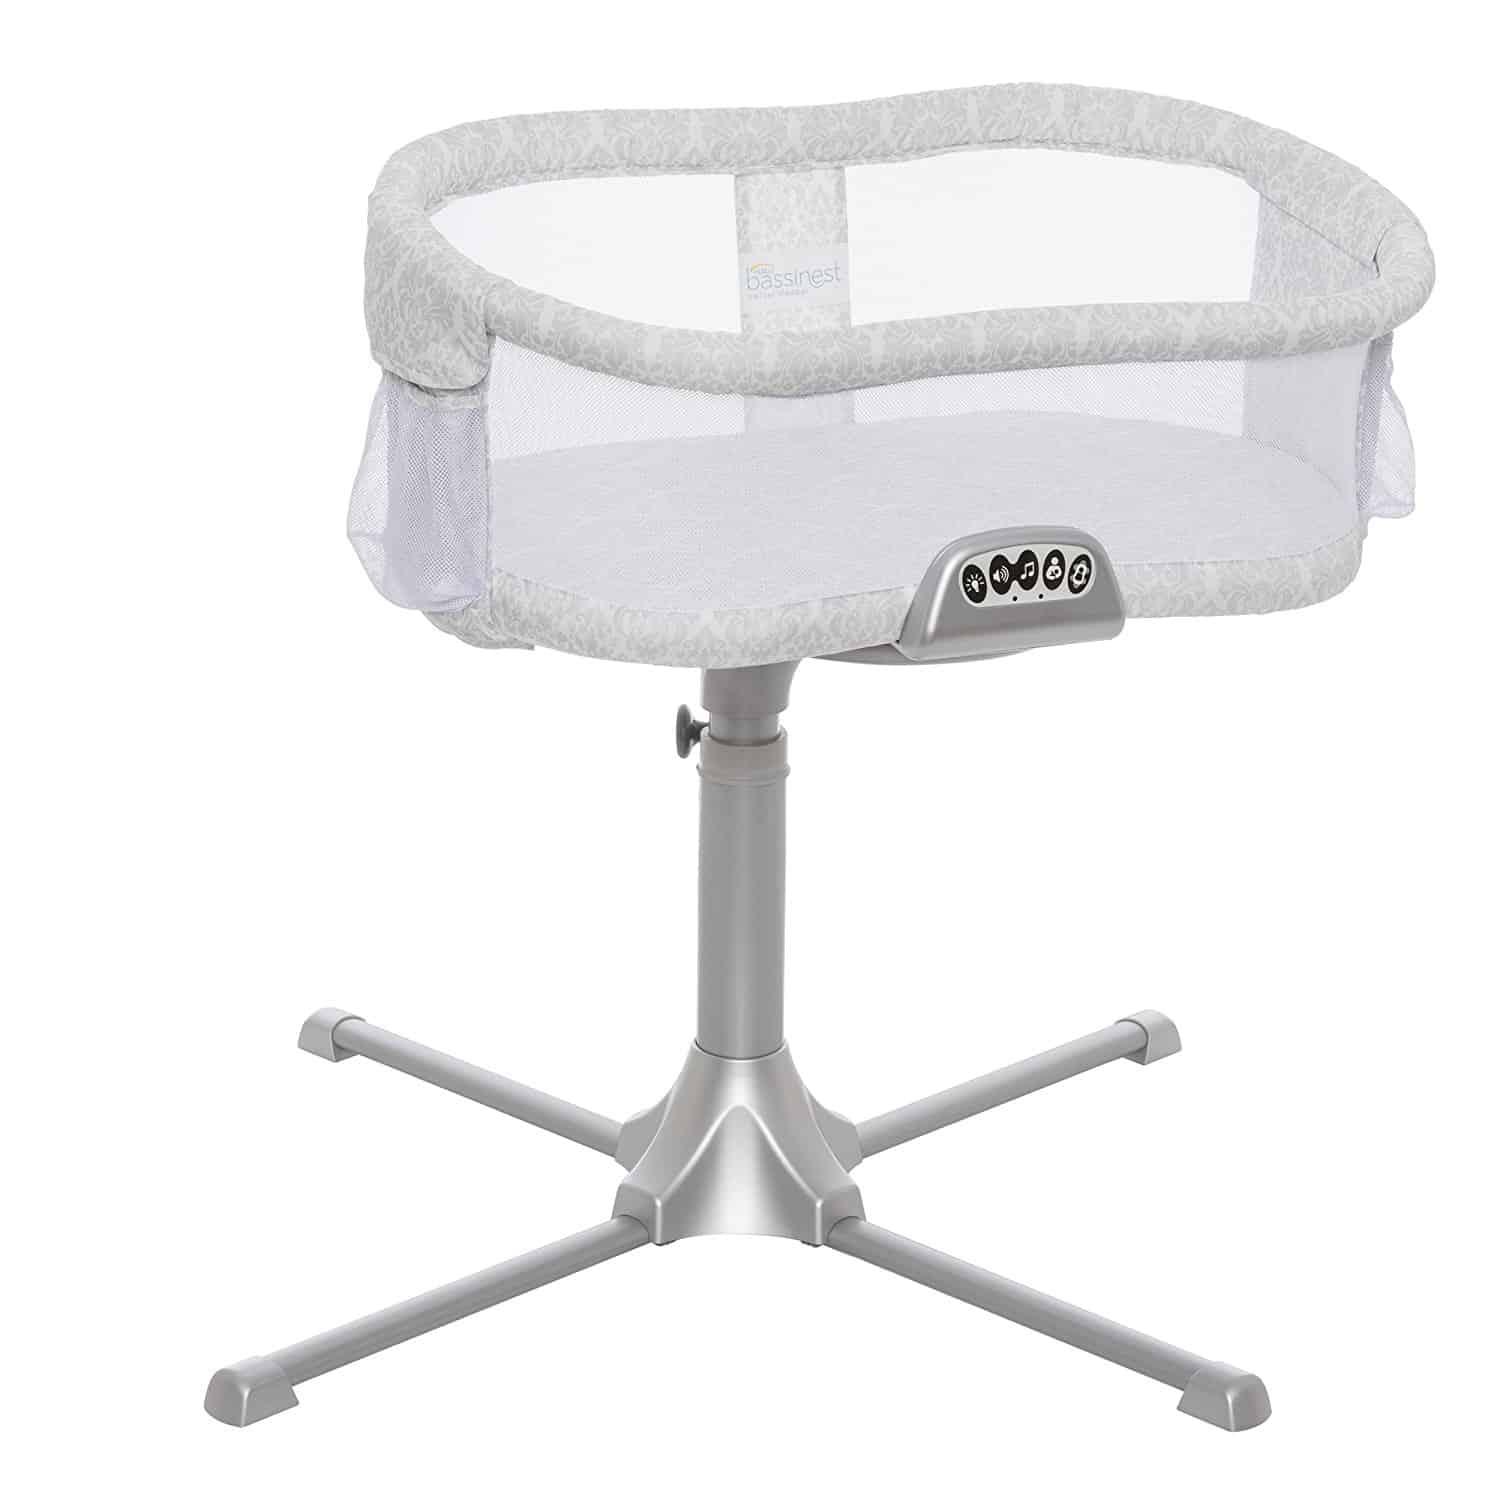 HALO Bassinest Swivel Sleeper - Premiere Series Bassinet